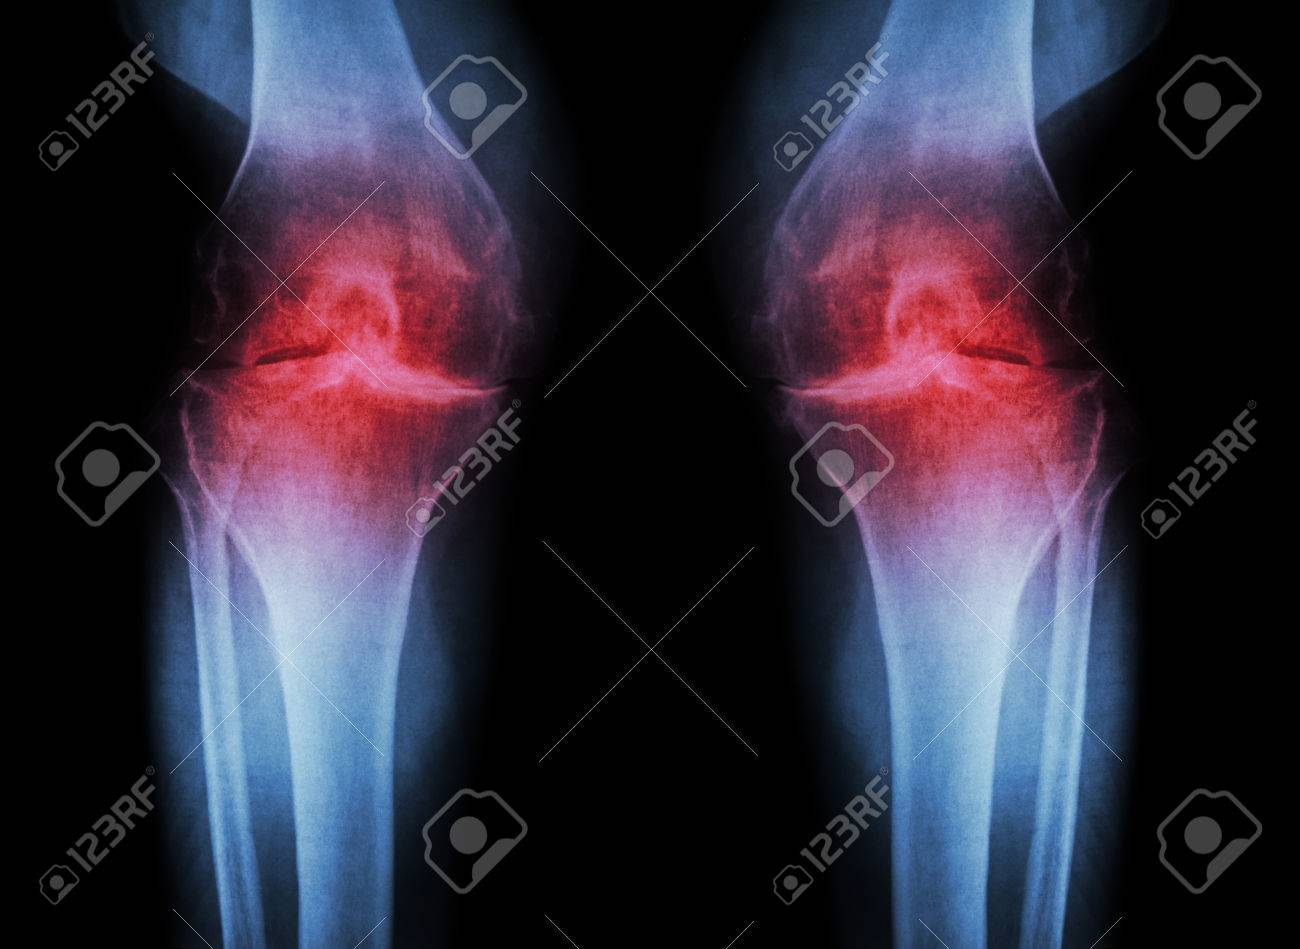 Osteoarthritis Knee ( OA Knee ) ( Film x-ray both knee with arthritis of knee joint : narrow knee joint space ) ( Medical and Science background ) - 43834372